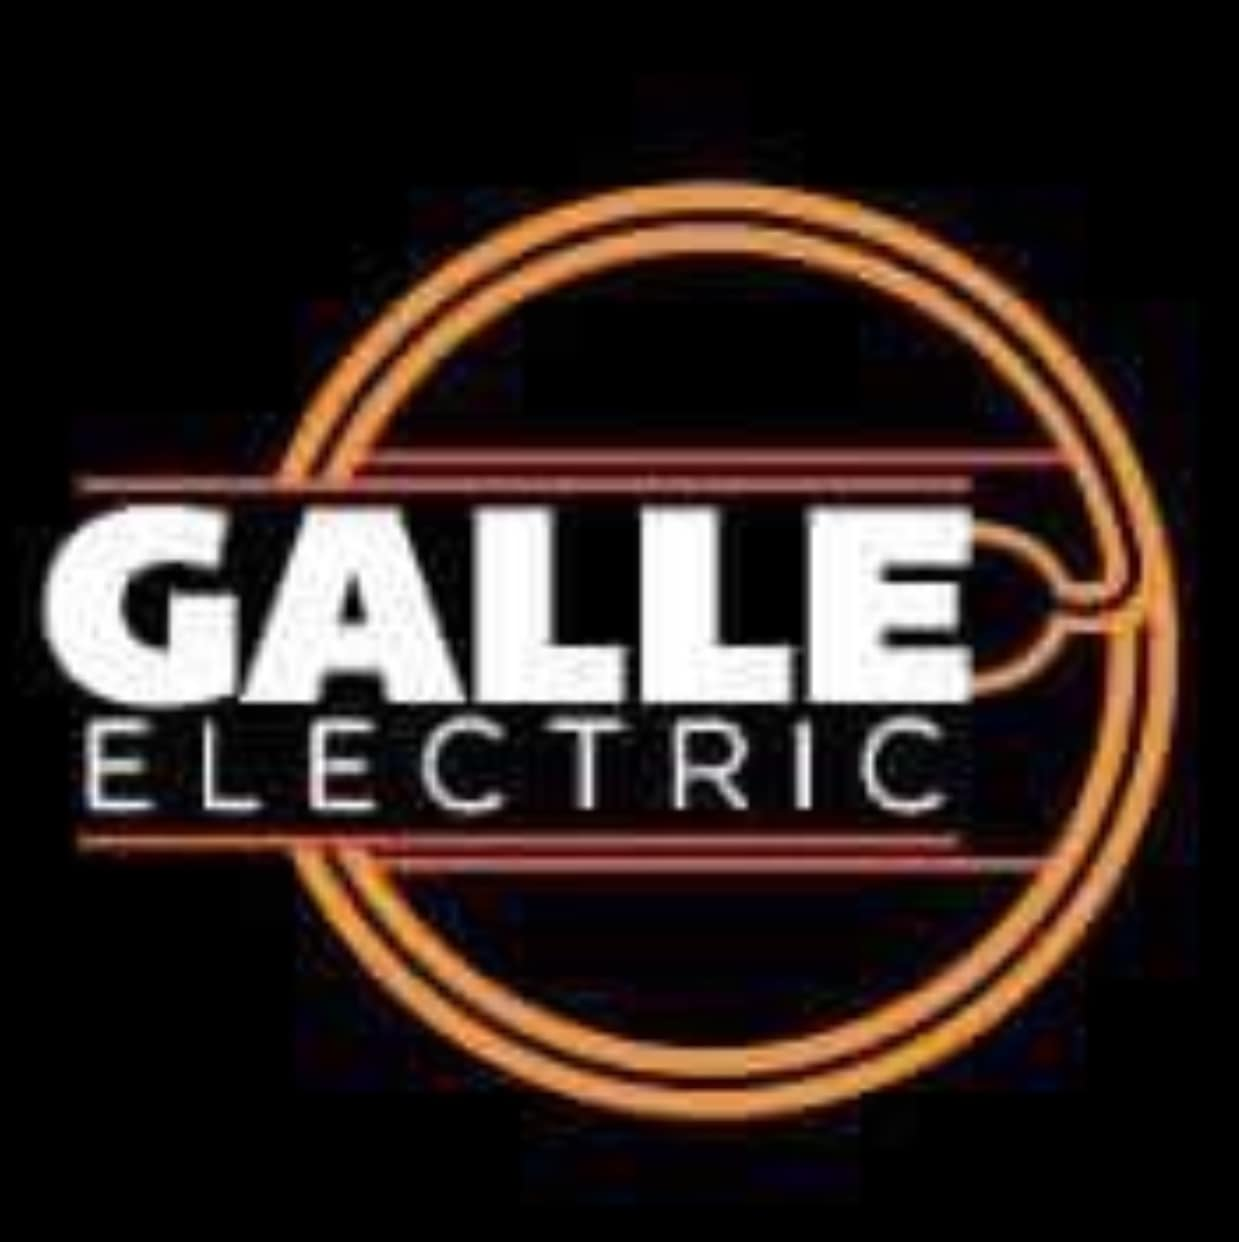 GALLE ELECTRIC LLC